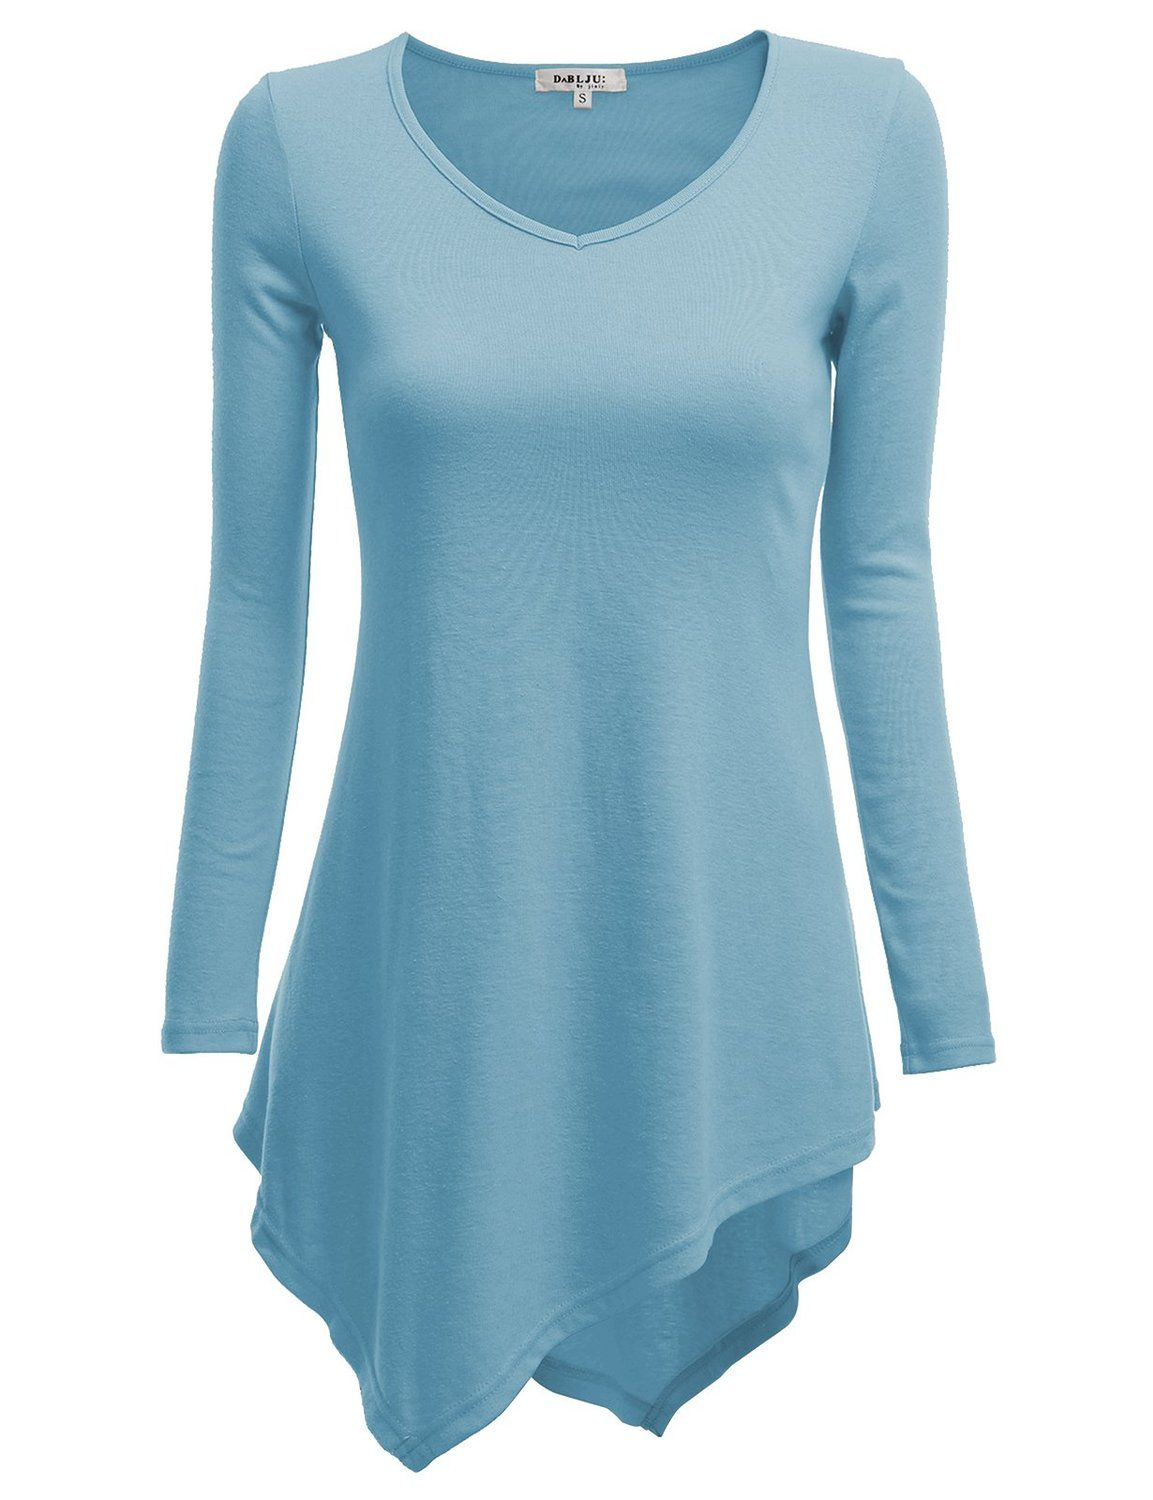 Long Tunic Tops to Wear with Leggings | Women's Tops & Tees ...